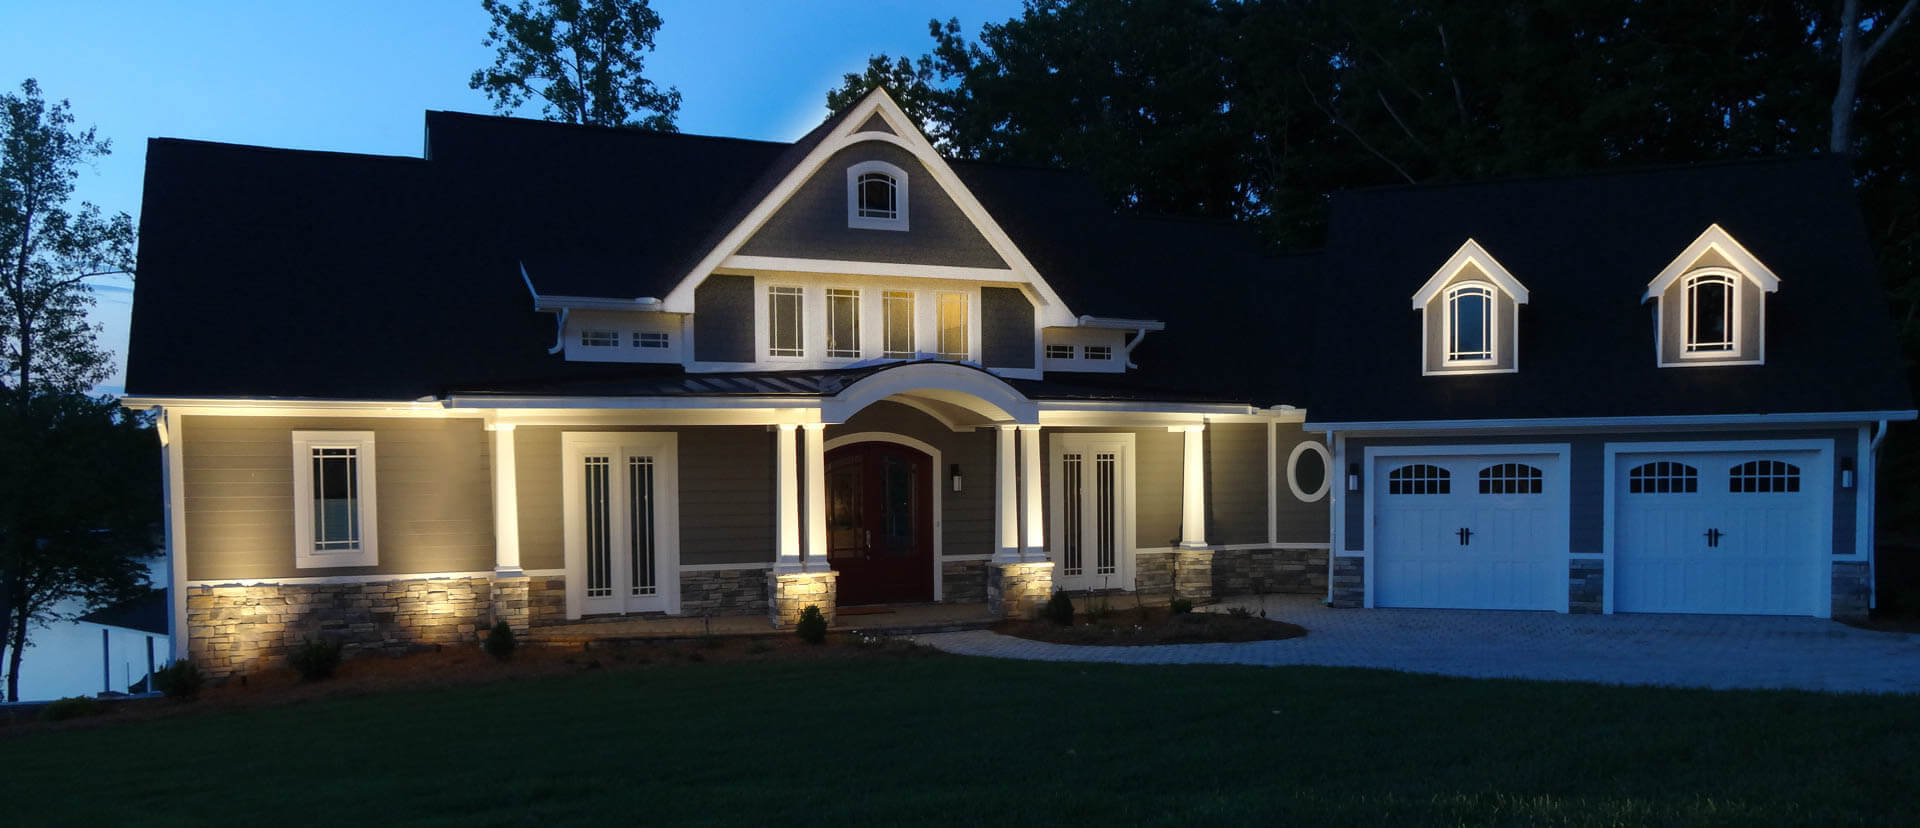 House accent lighting lighting ideas Exterior accent lighting for home